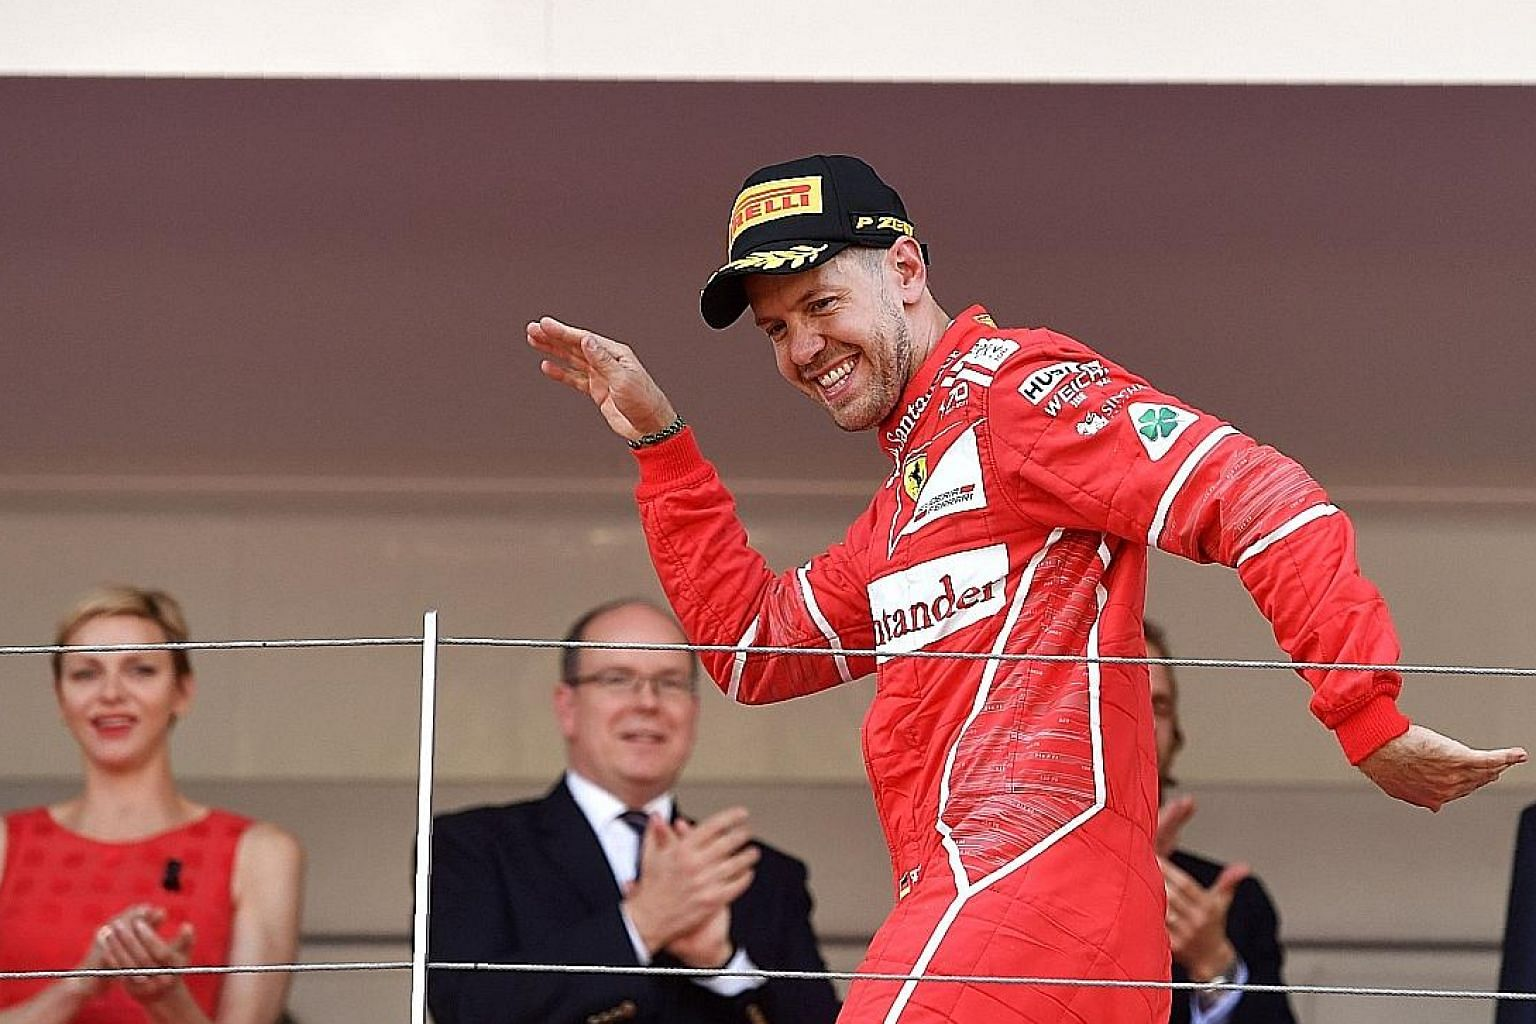 Ferrari's Sebastian Vettel celebrating on the podium after winning in Monaco, watched by Prince Albert II, Princess Charlene and other dignitaries.